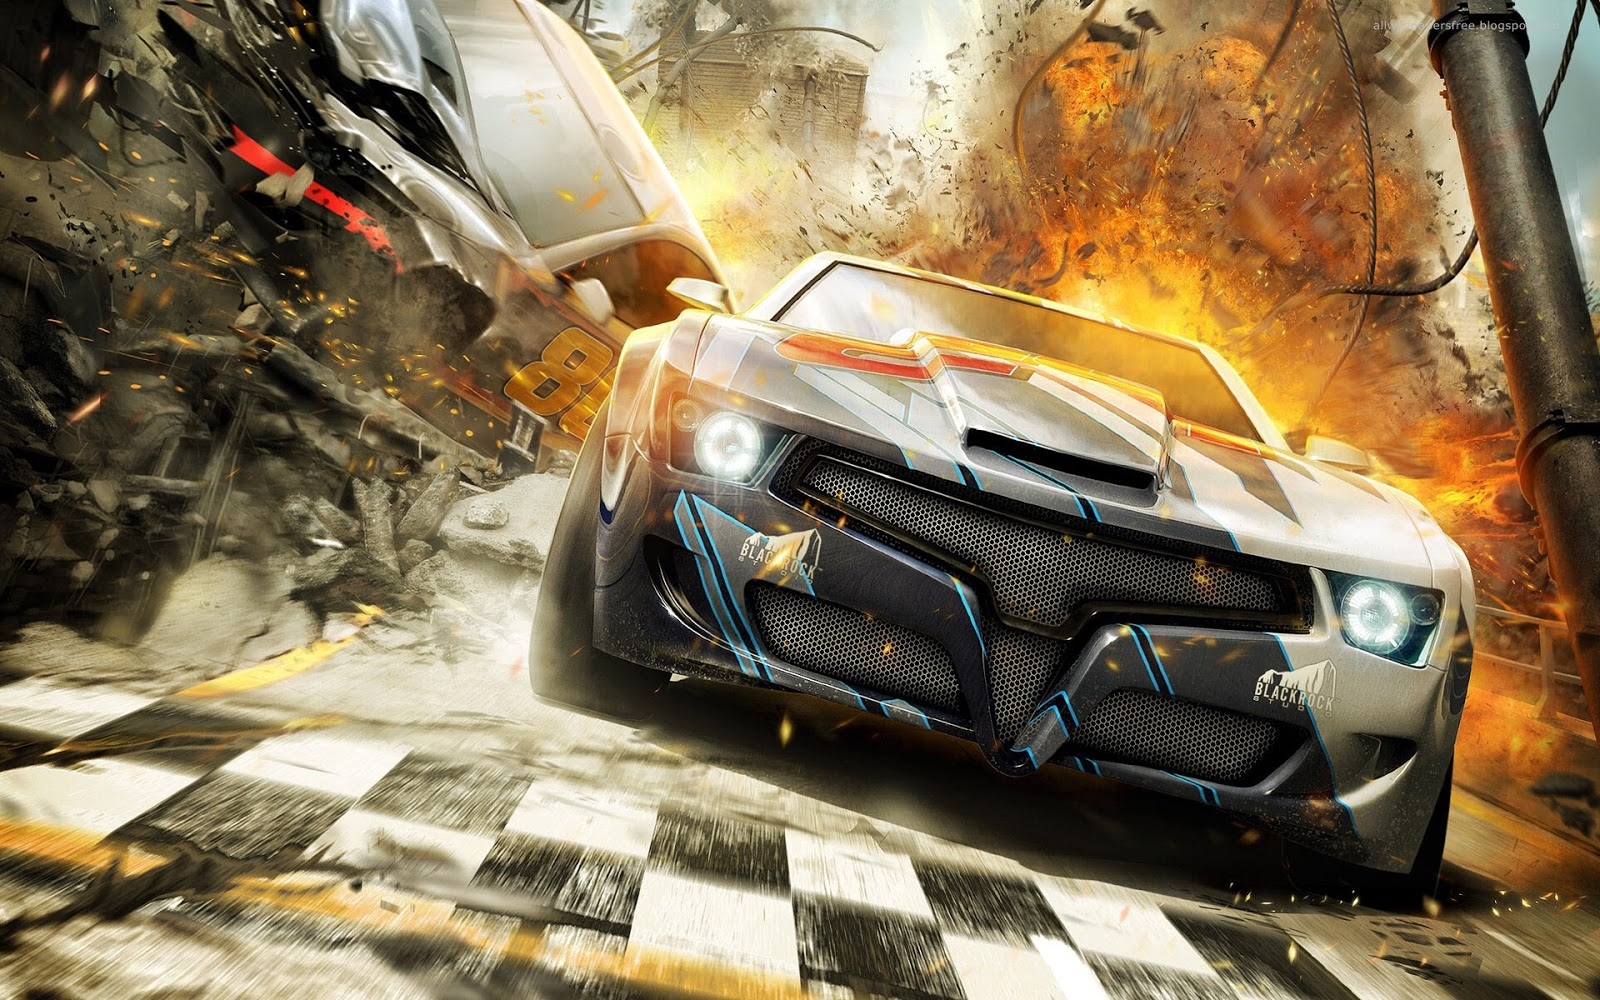 3d Games Hd Wallpaper For Mobile: 3d Games HD Wallpapers